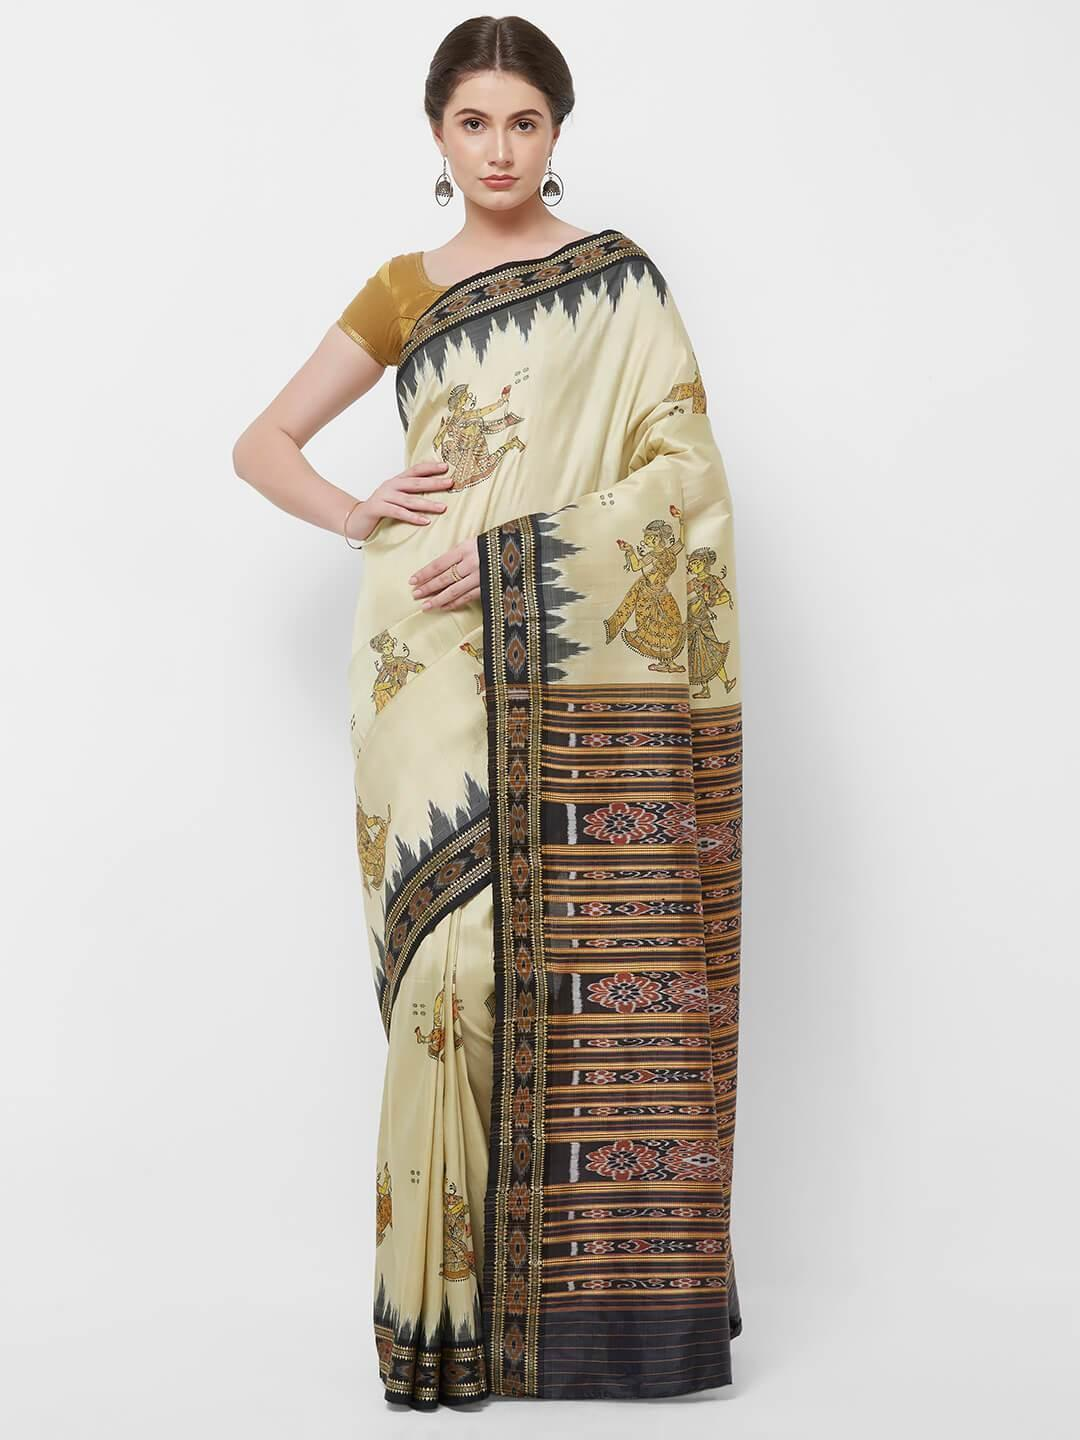 CraftsCollection.in -Cream Odisha Sambalpuri Silk Saree with Pattachitra motifs